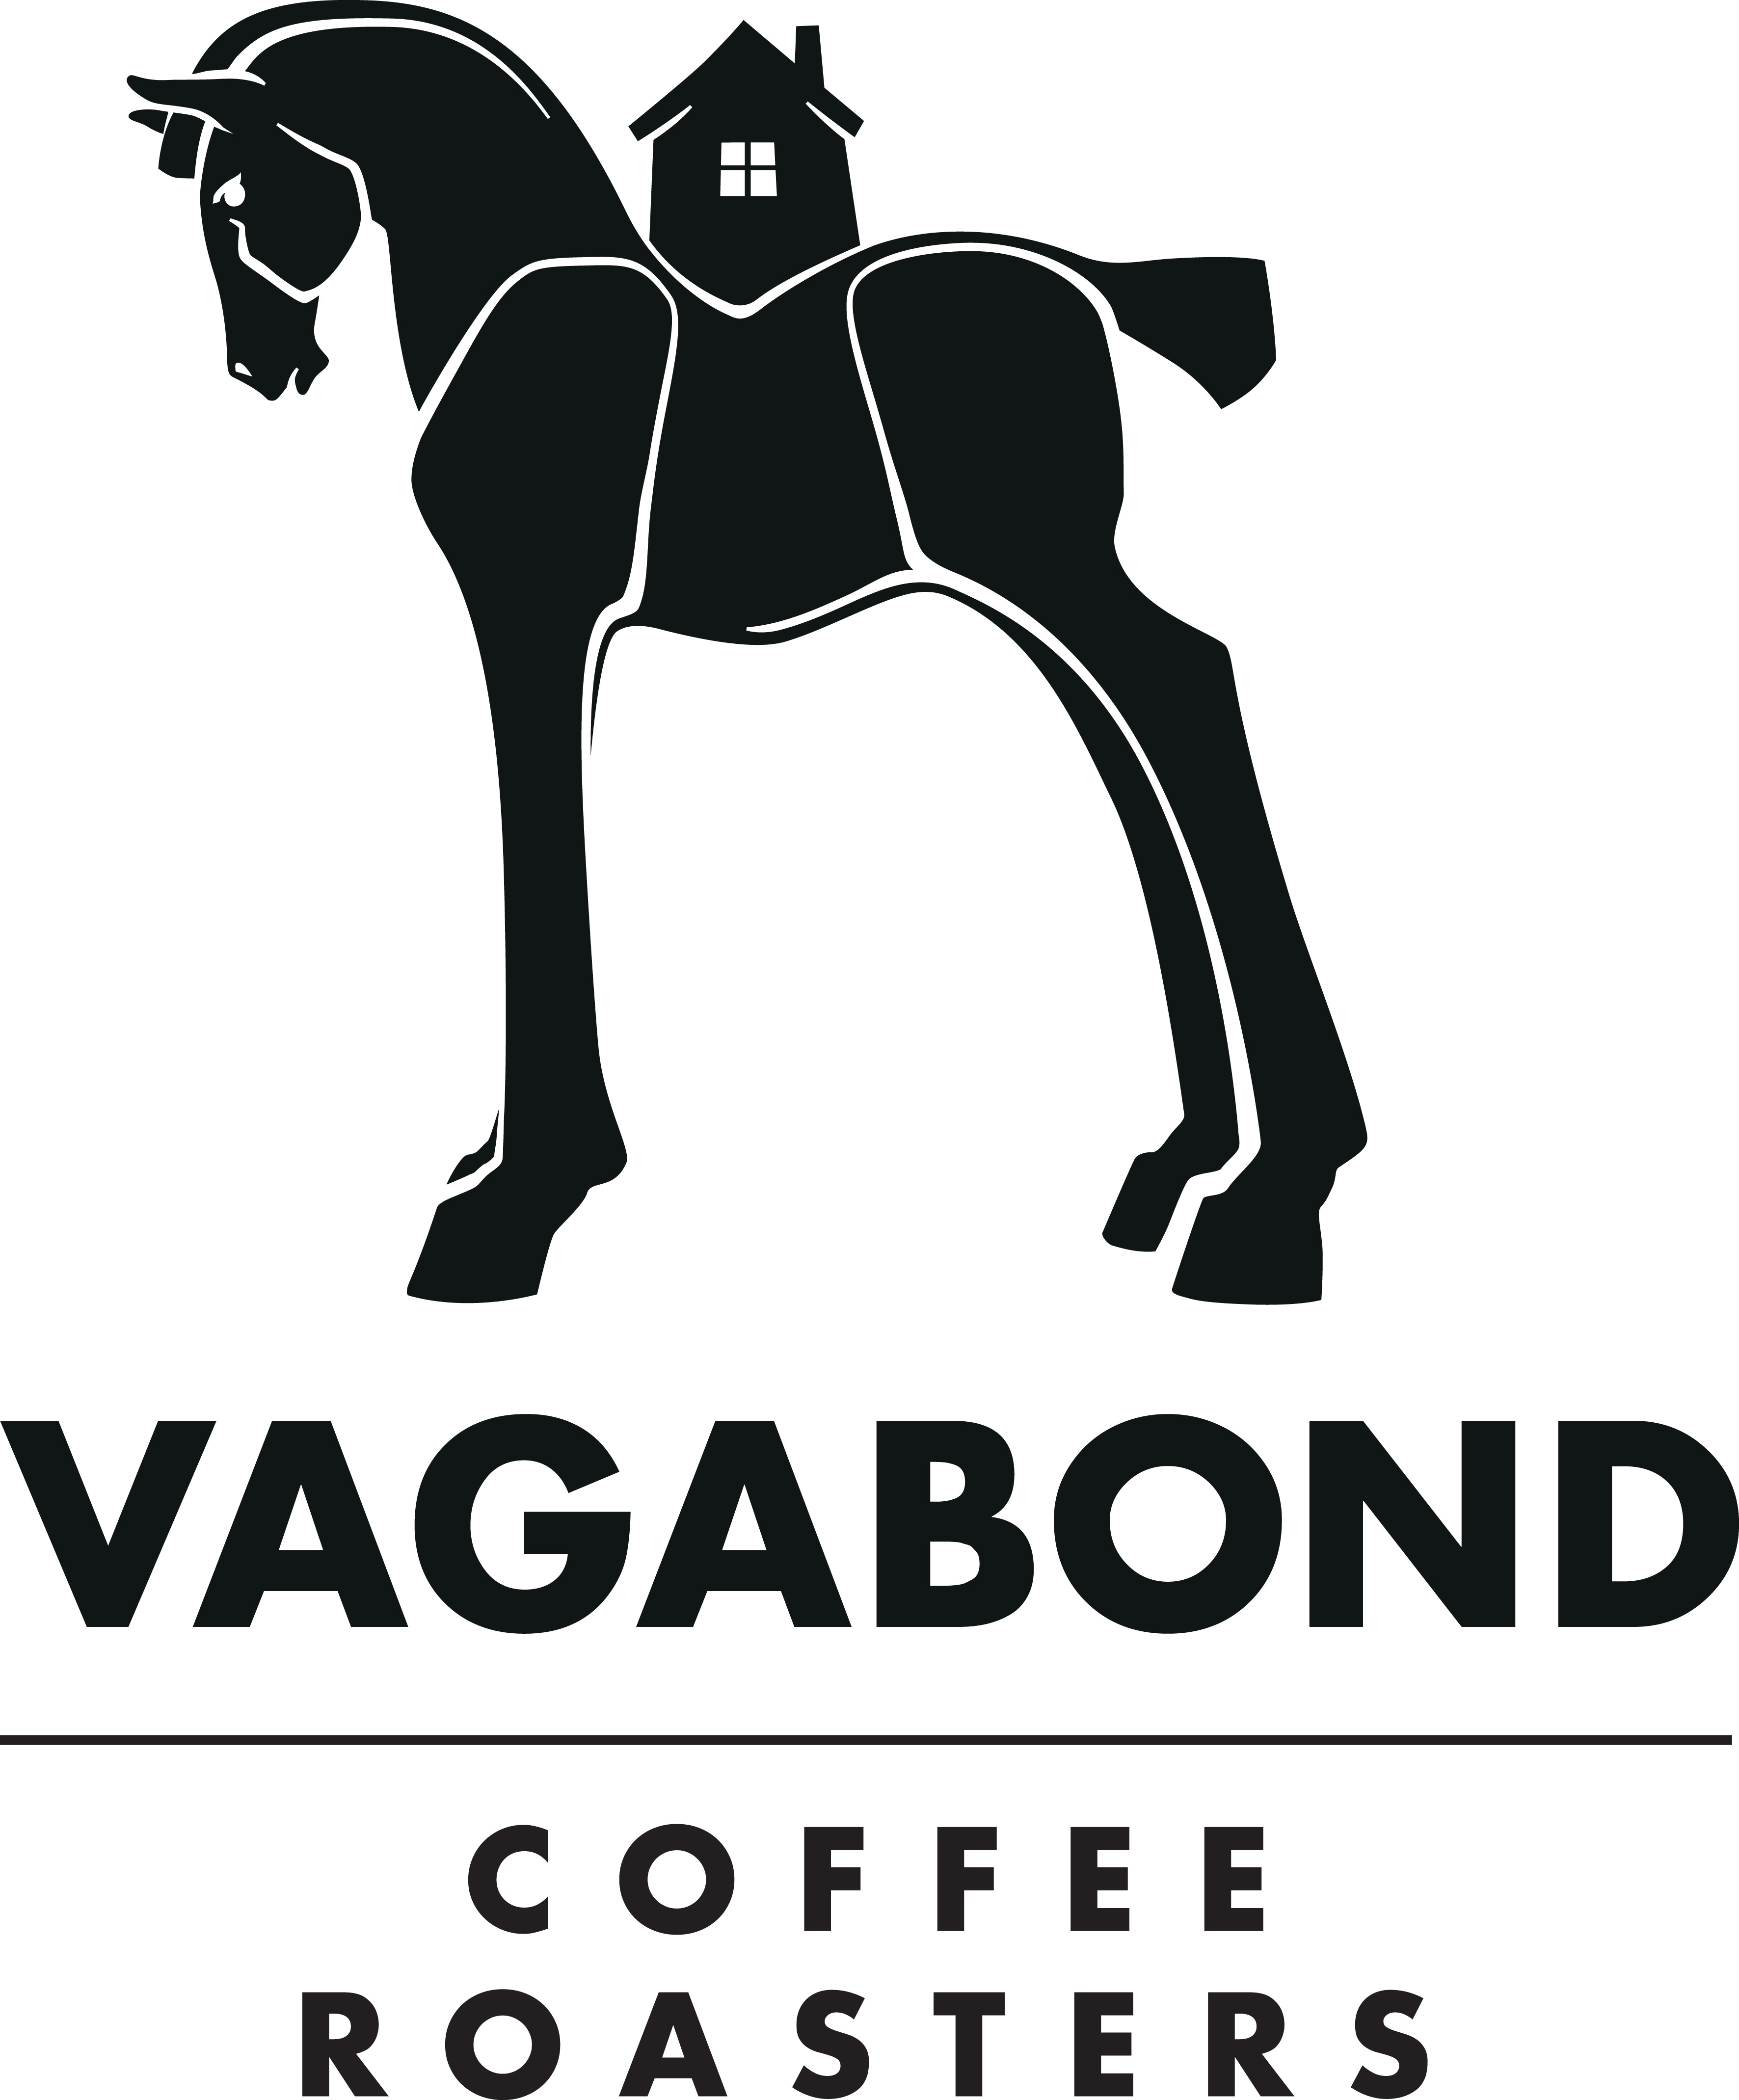 Vagabond Coffee Roasters